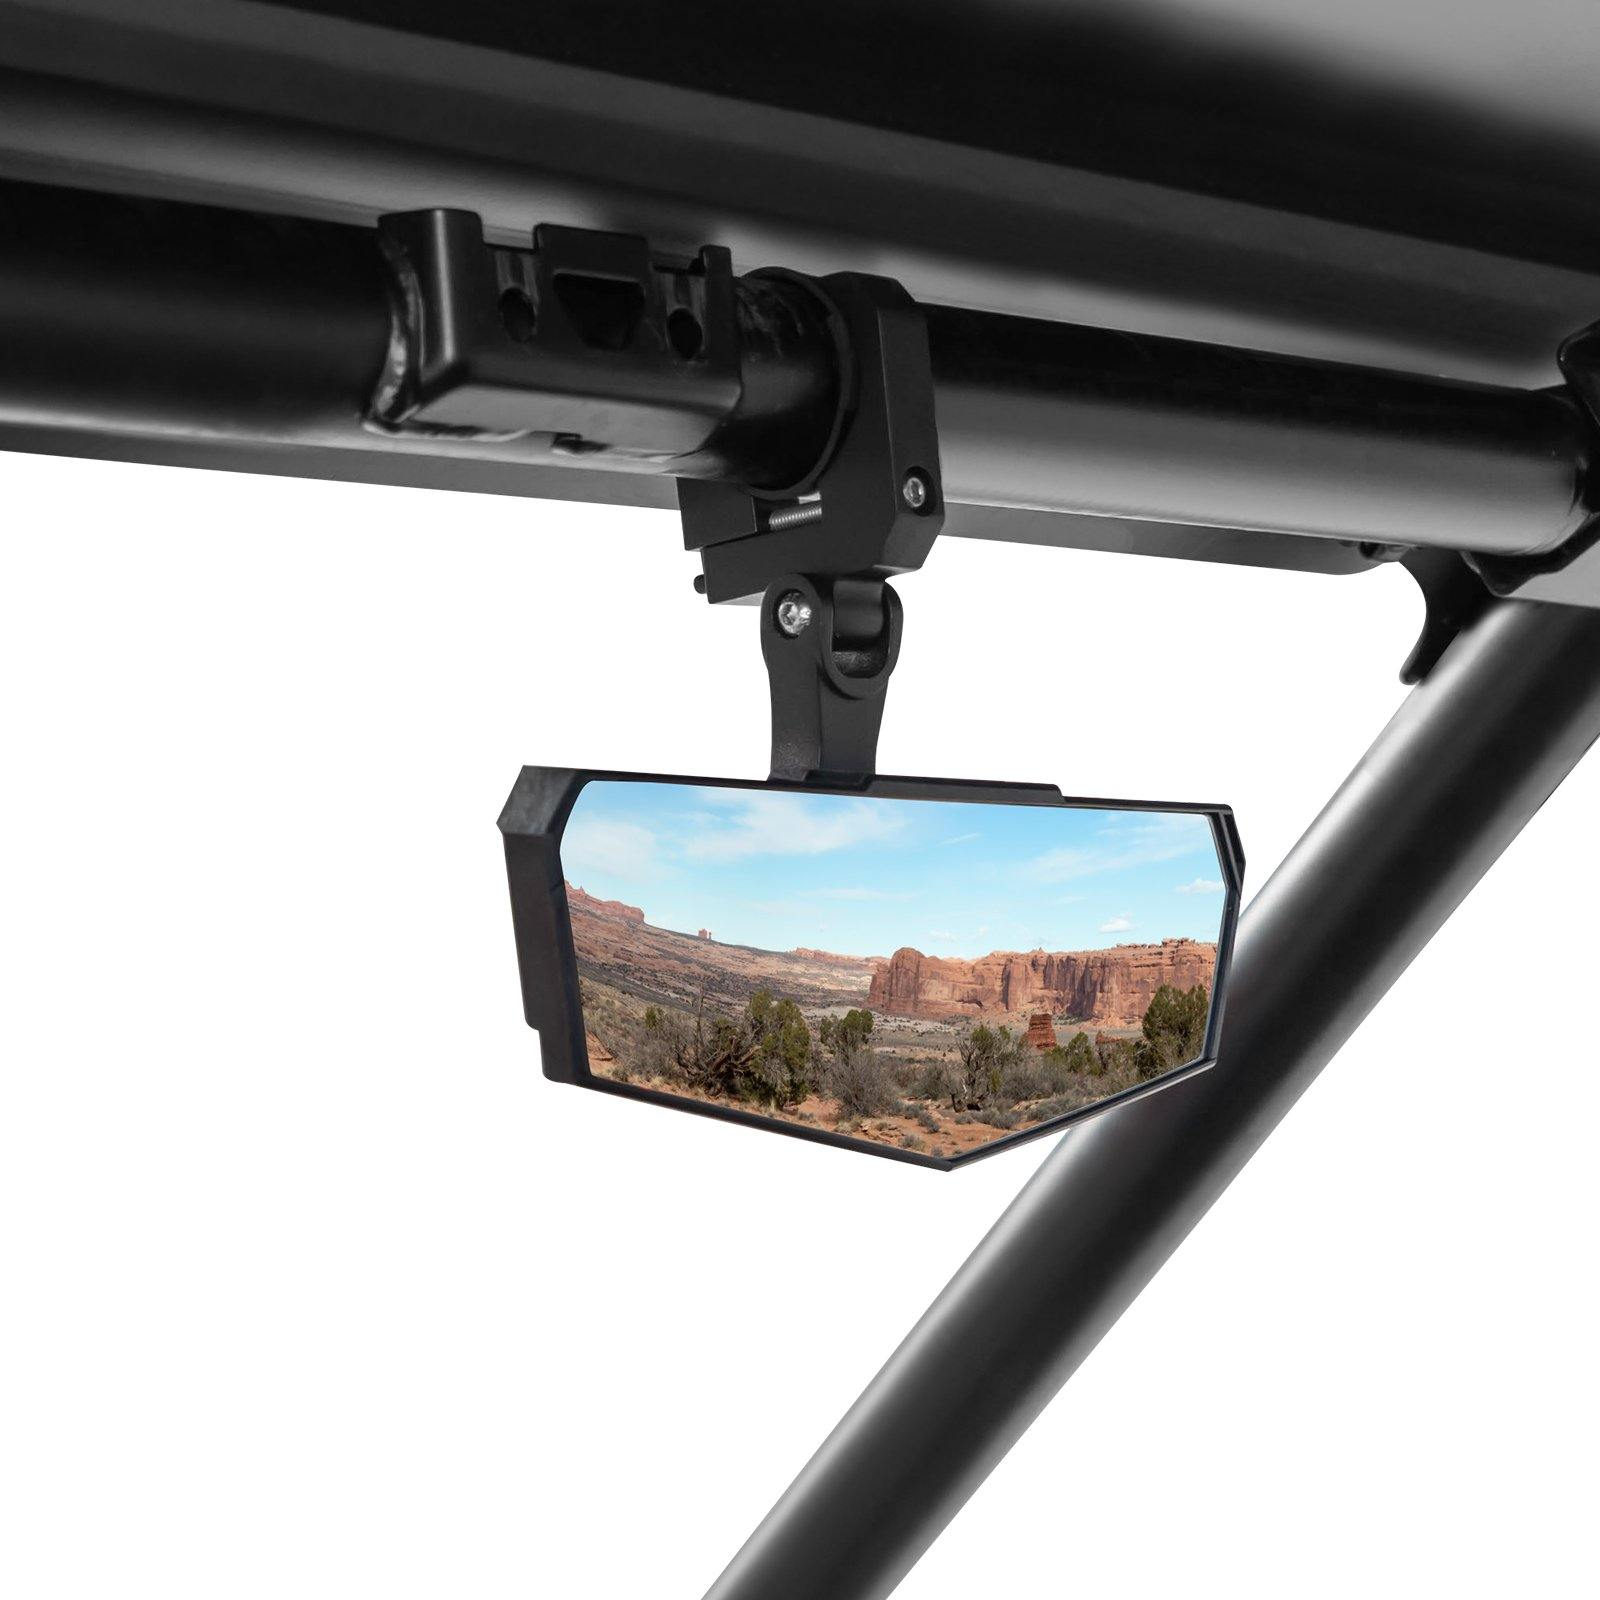 Universal High-Definition Race Convex Mirror with 1.65